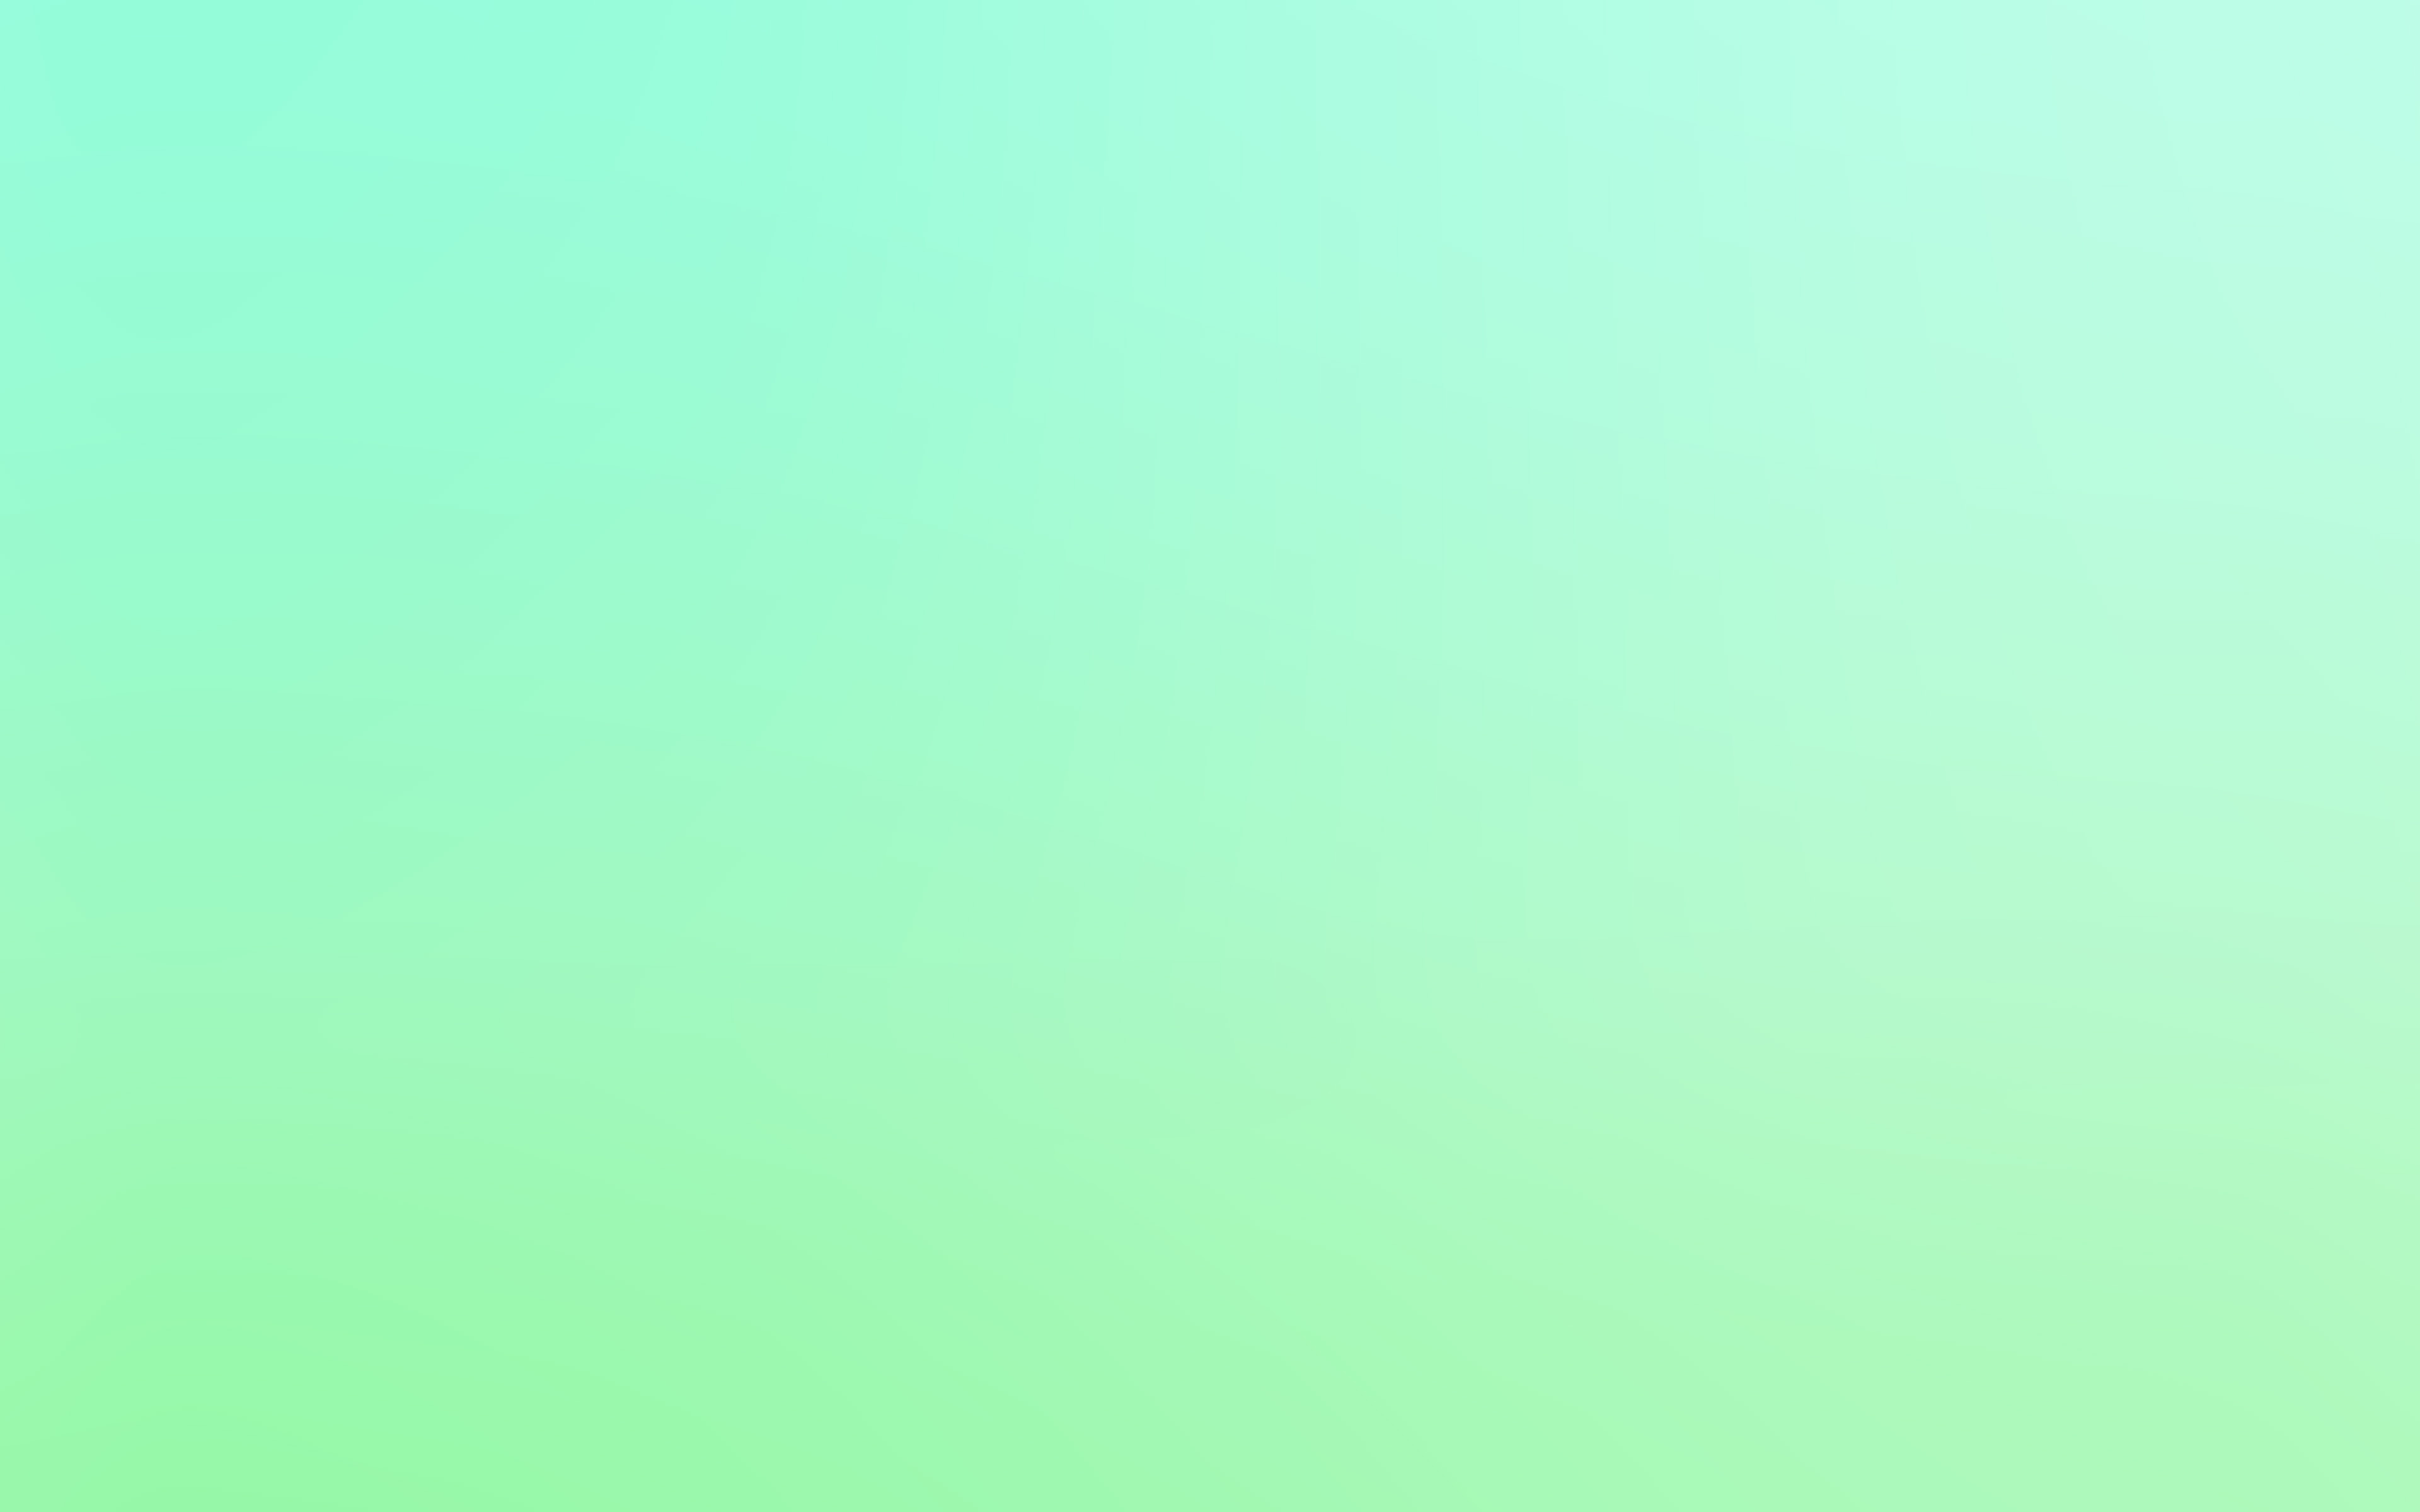 Car Wallpapers For Iphone Se Sm59 Cool Pastel Blur Gradation Mint Green Wallpaper